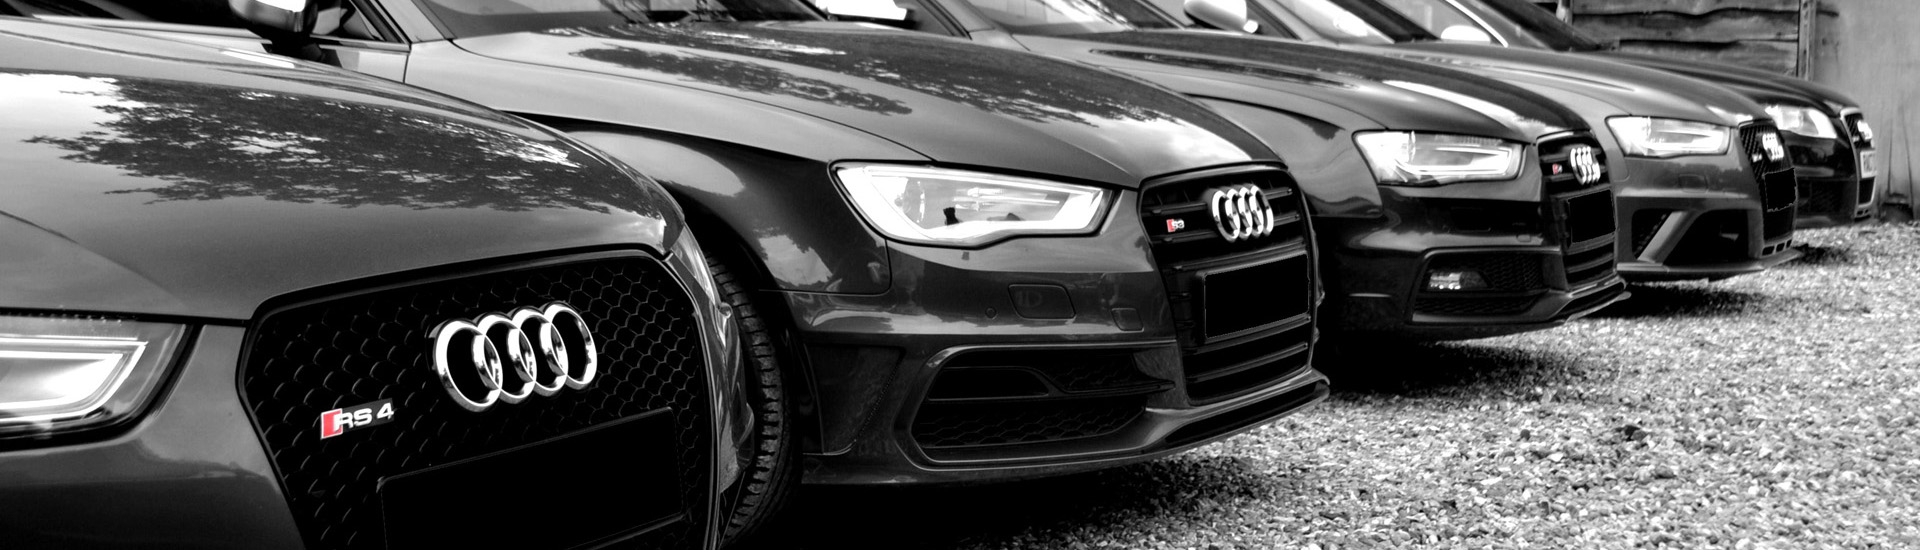 AUDI CAR BUYERS SYDNEY - SELL MY AUDI FOR CASH